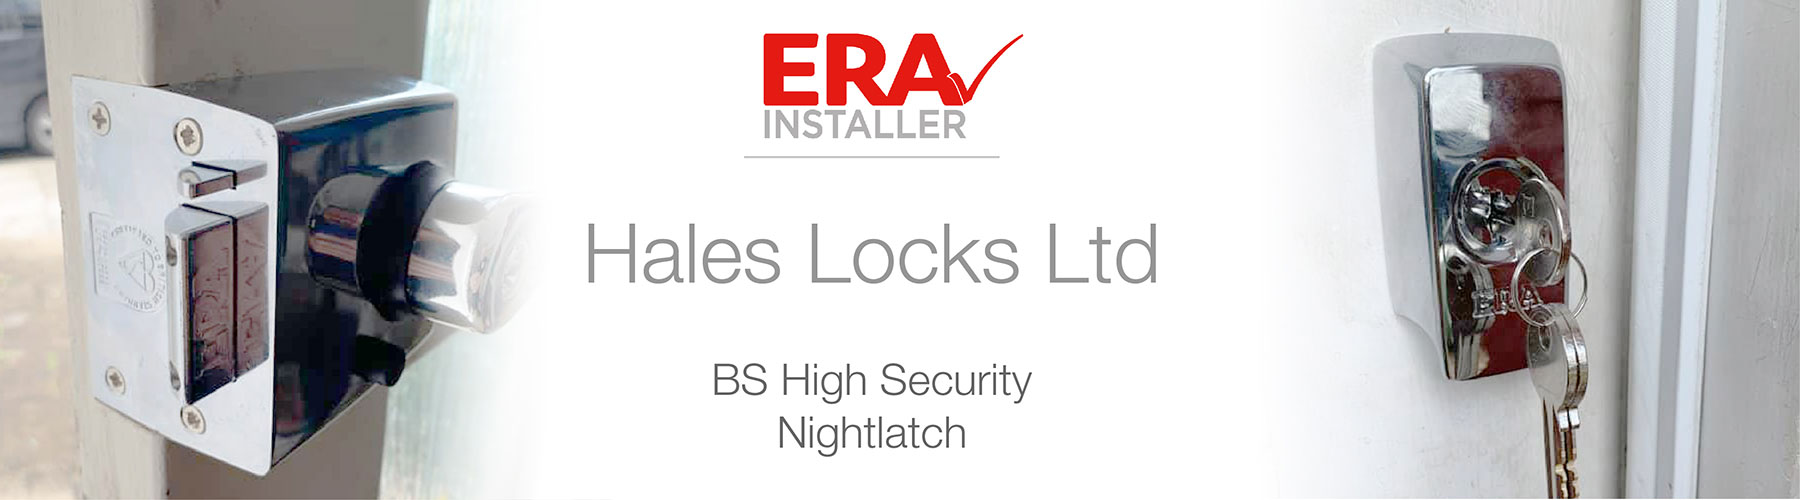 ERA Installer Testimonial Hales Locks